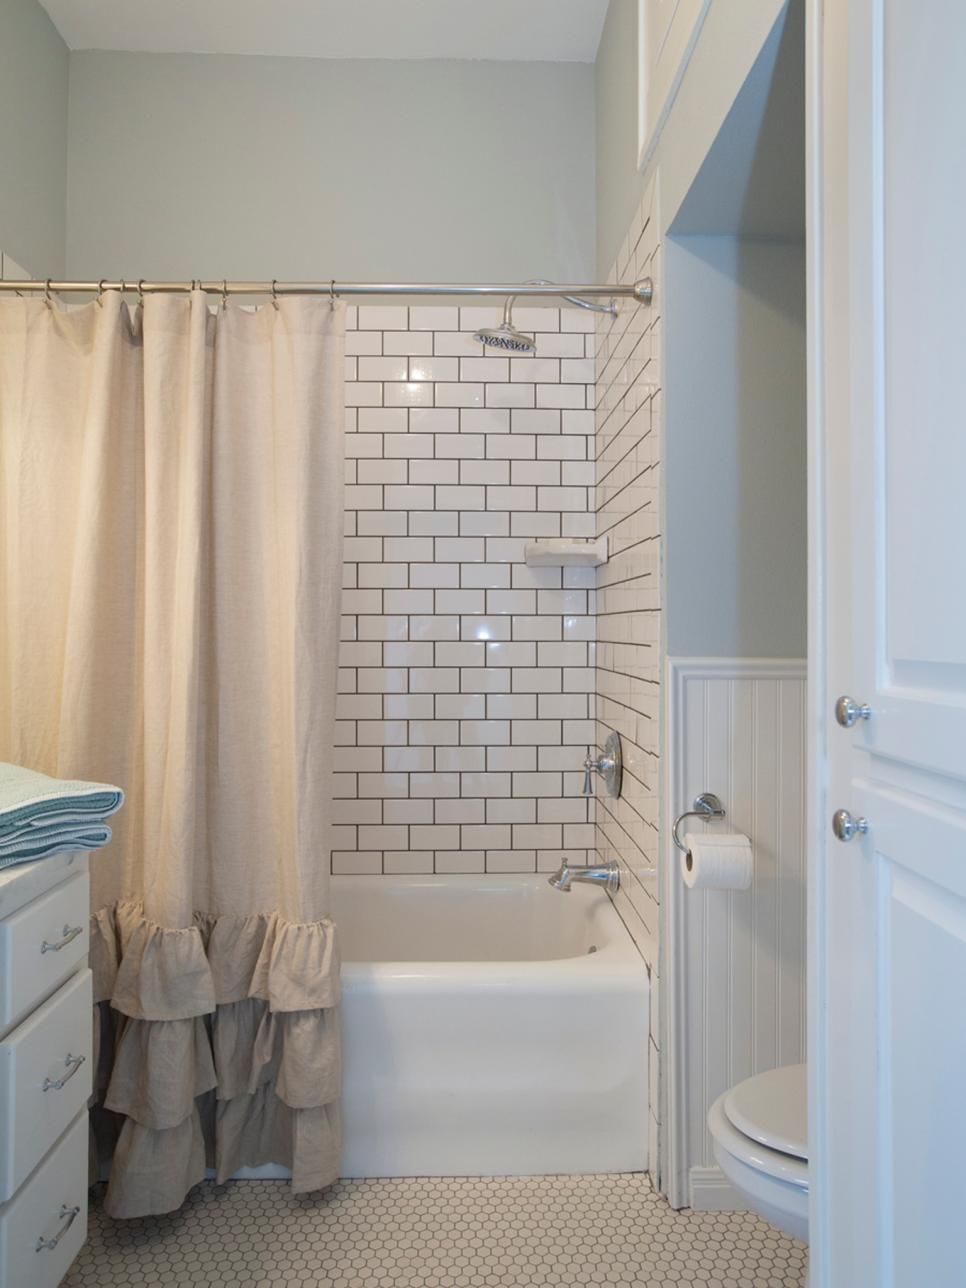 Fixer upper 39 s best bathroom flips beadboard wainscoting for Looking for bathroom designs